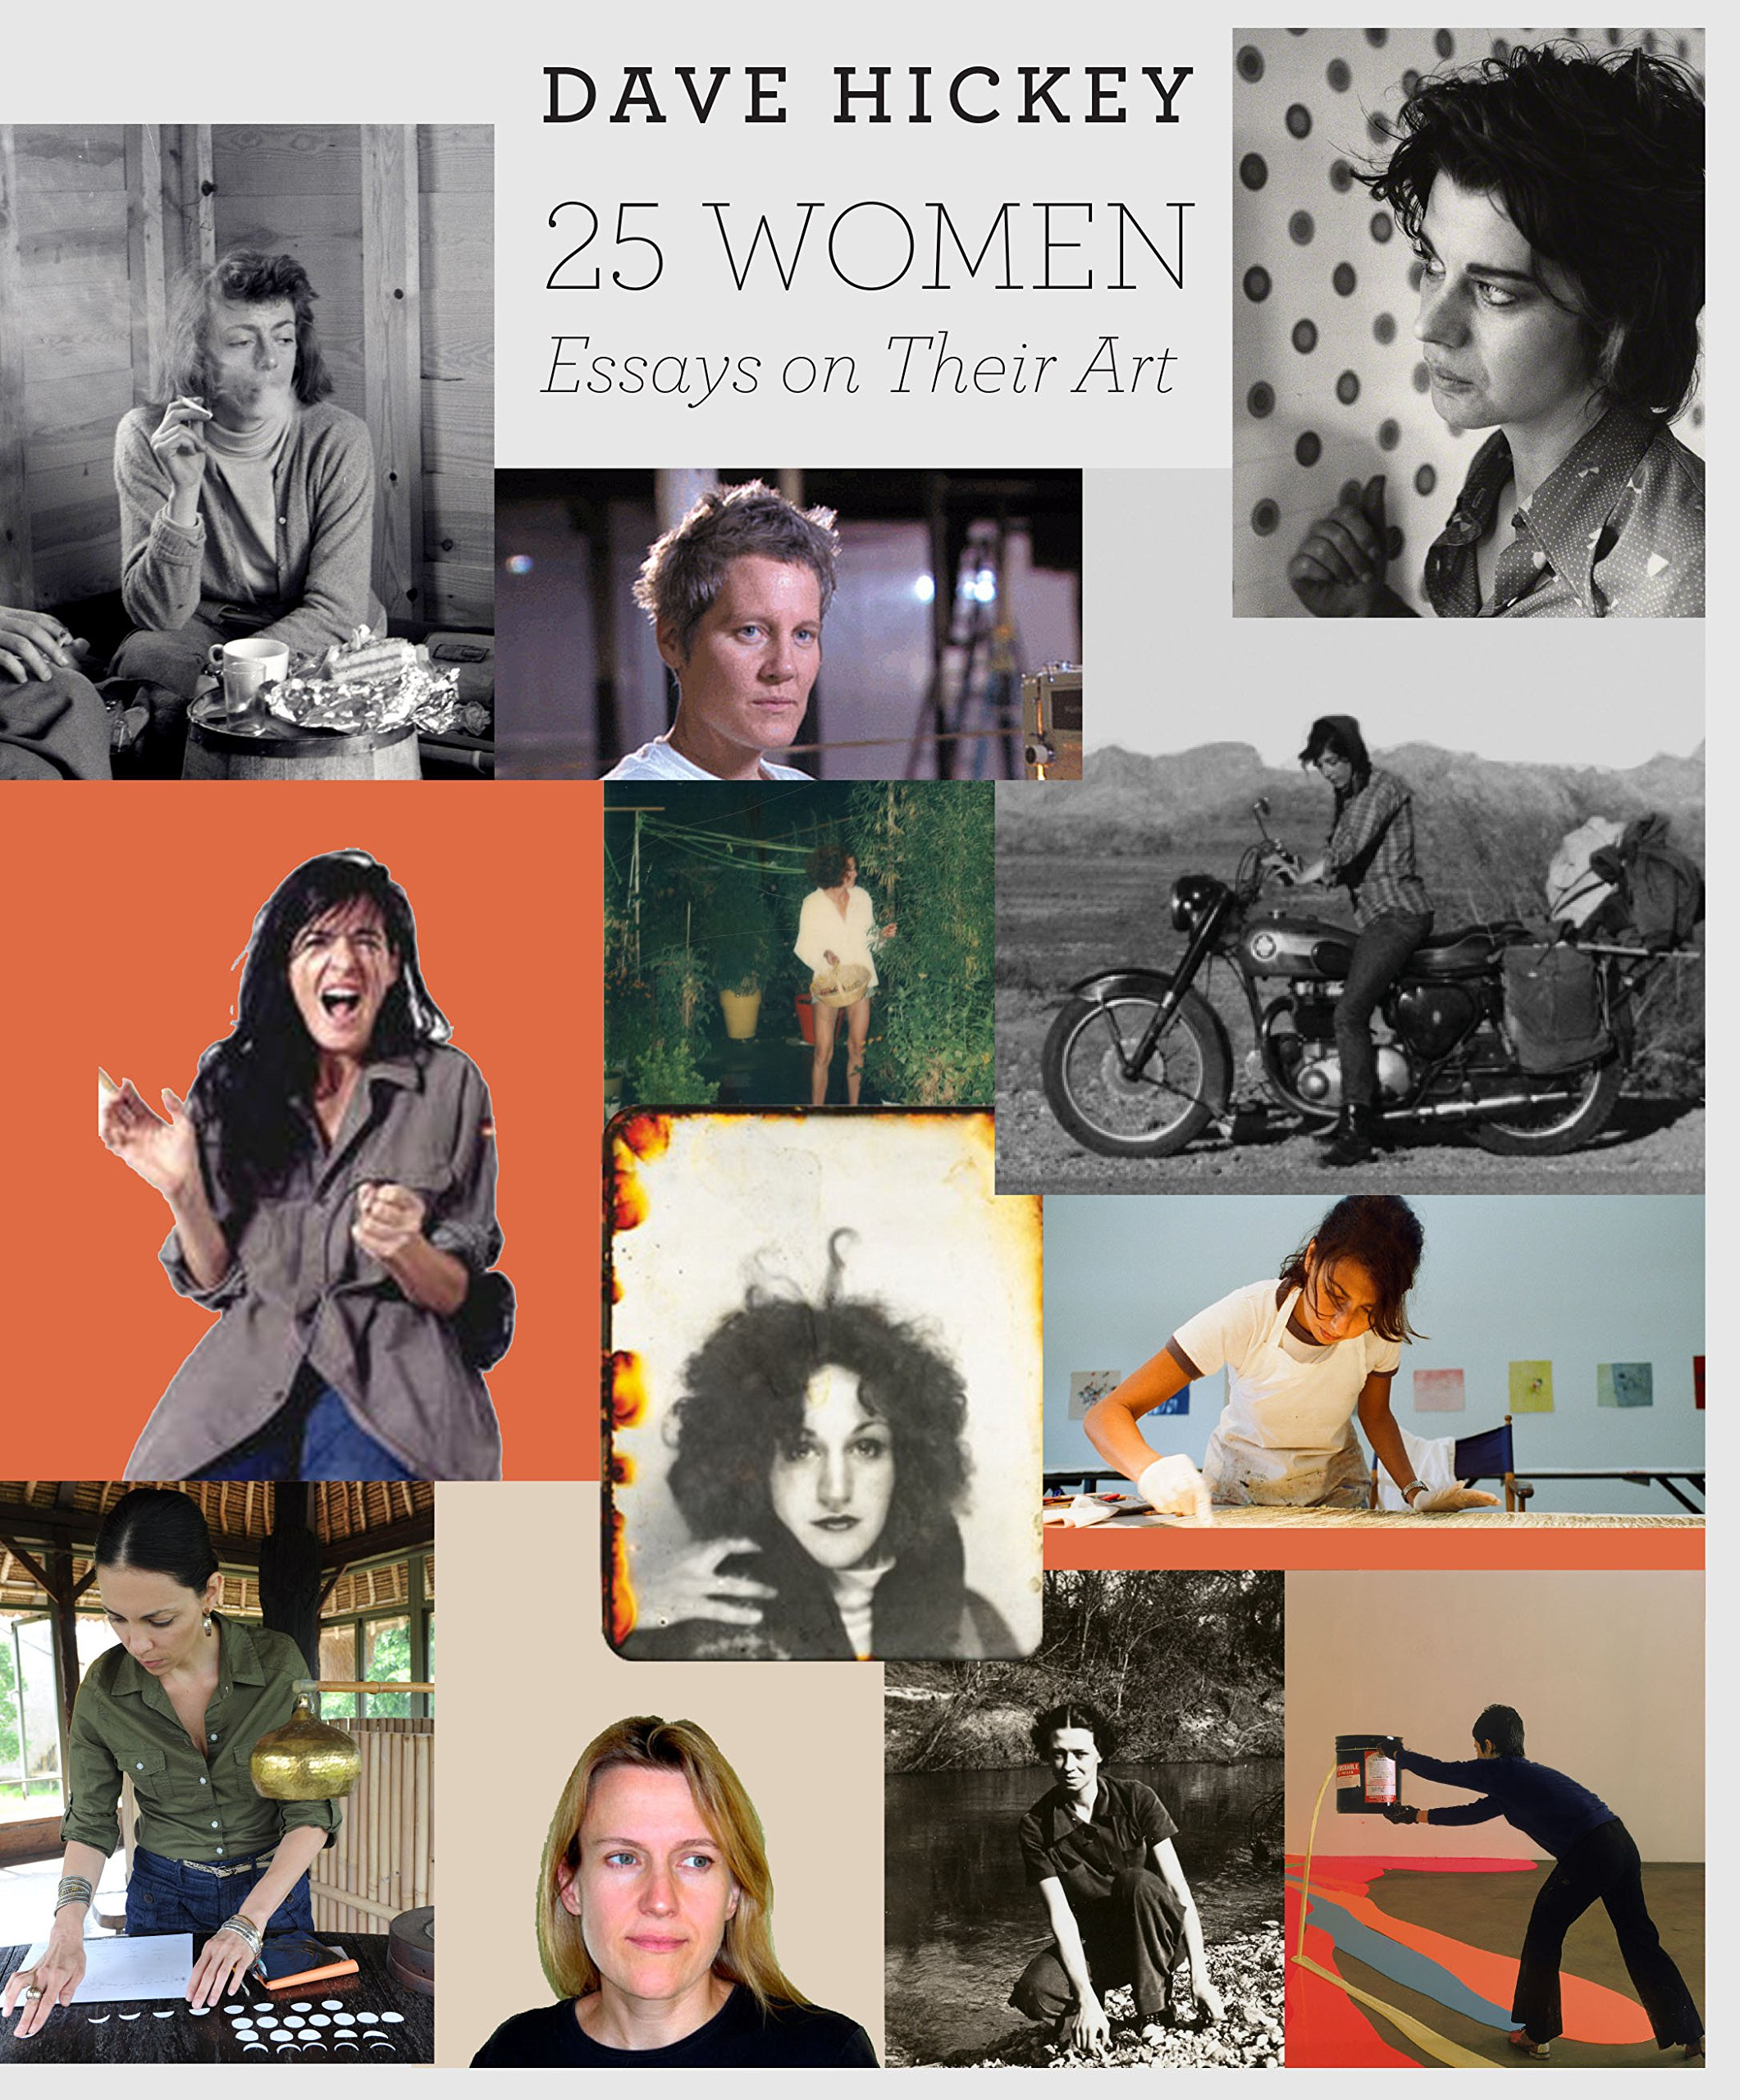 25 women essays on their art dave hickey 9780226333151  25 women essays on their art dave hickey 9780226333151 com books